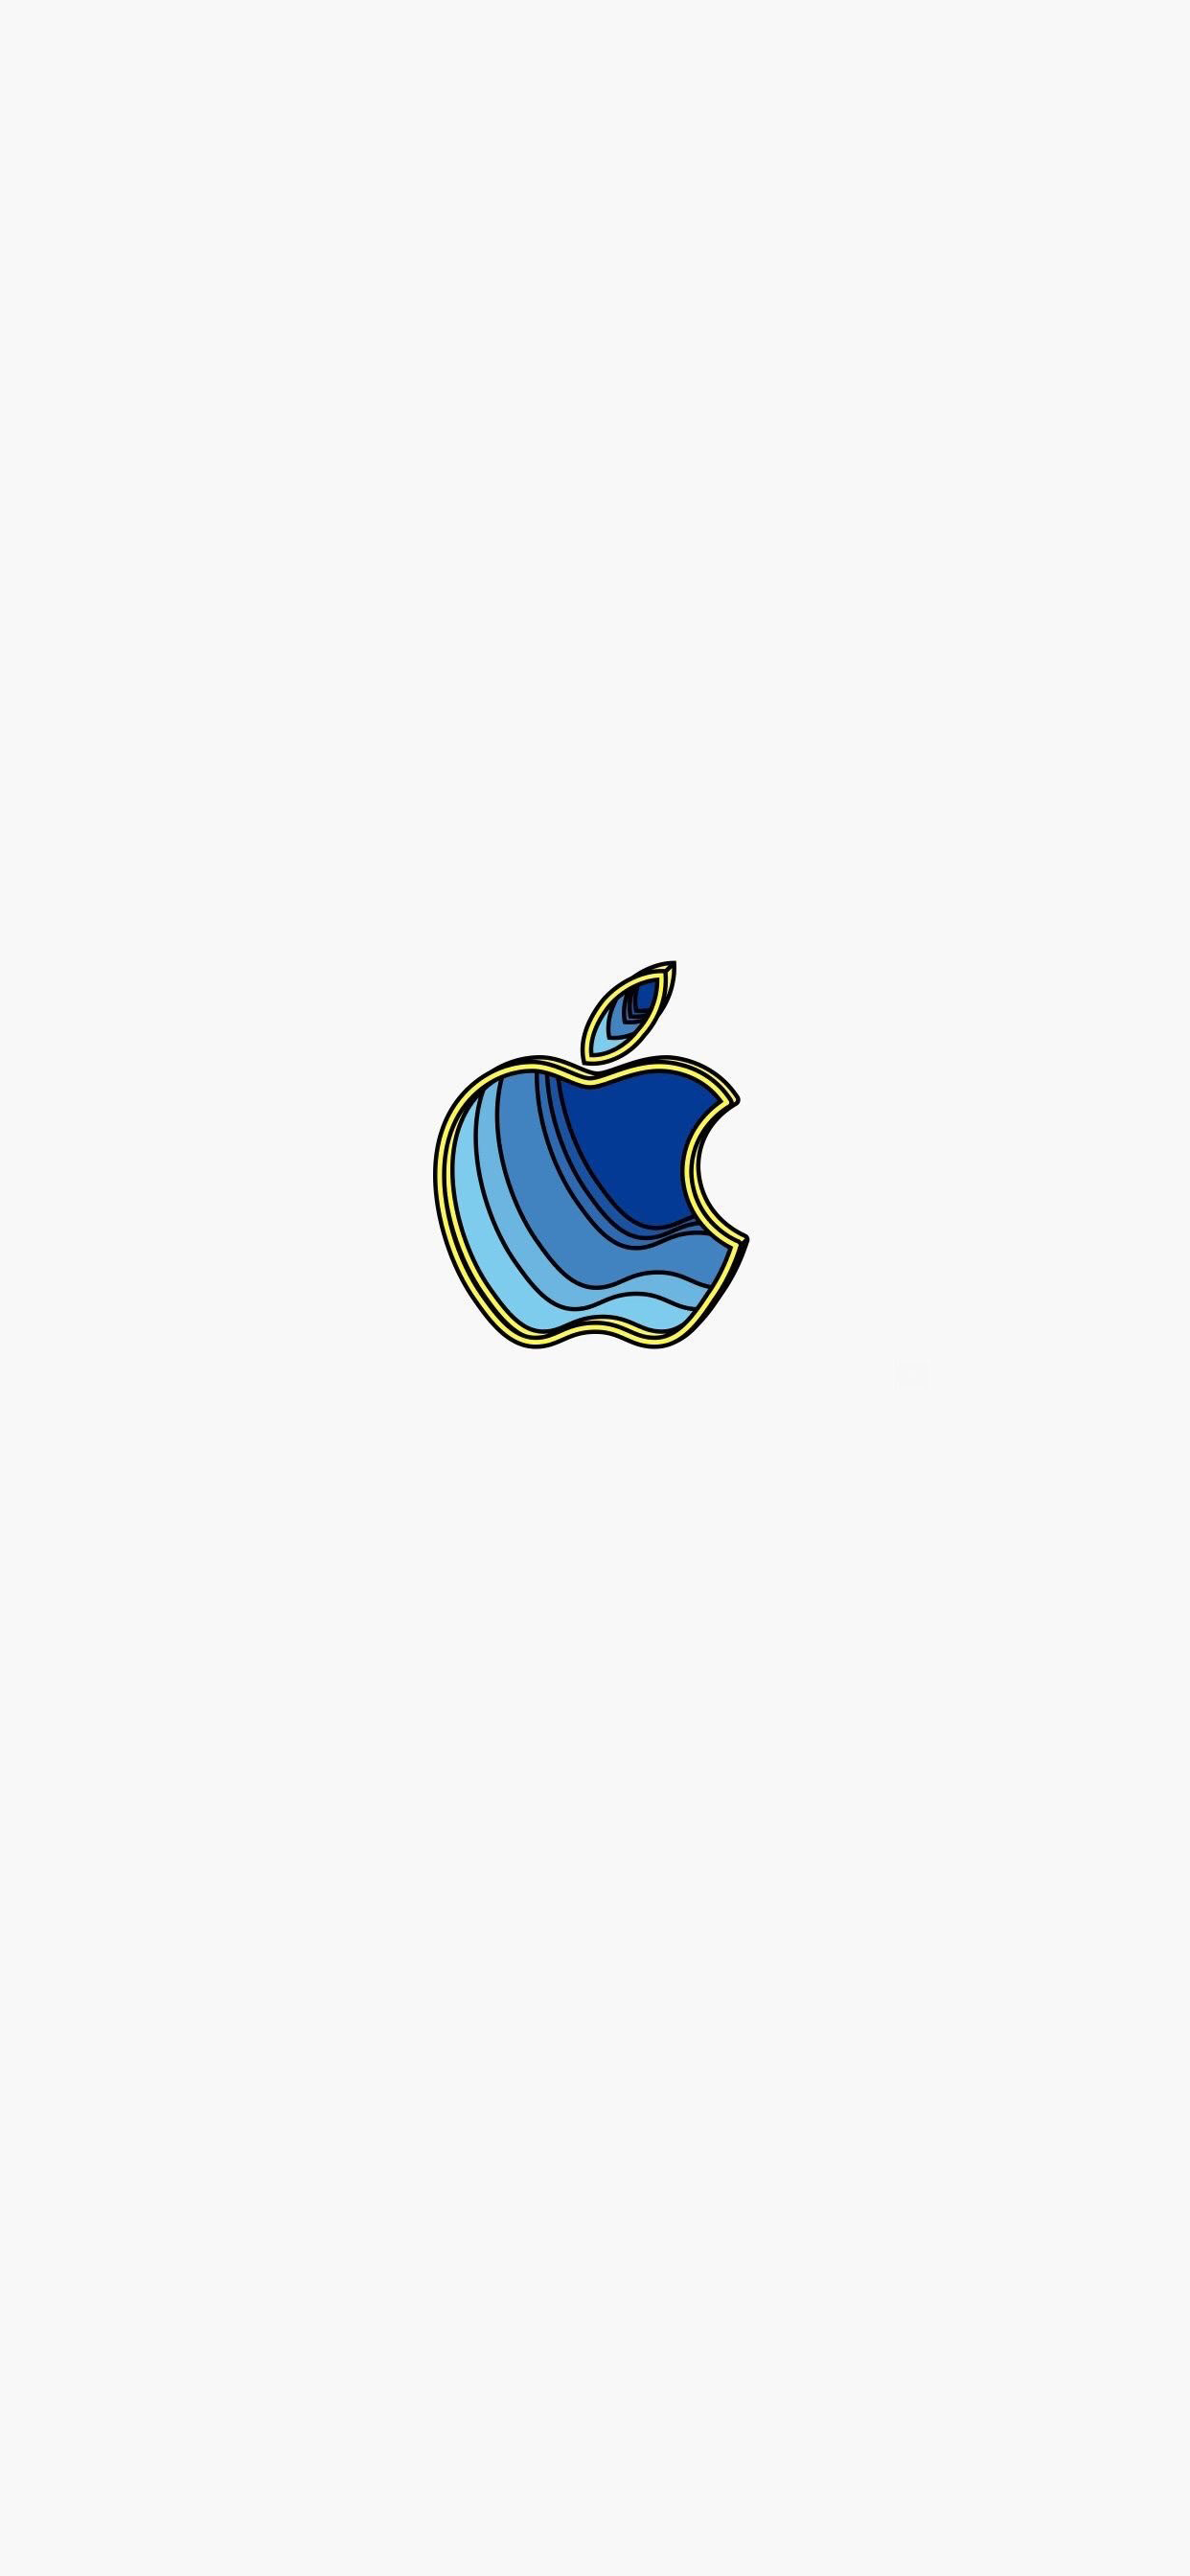 18 Apple logo